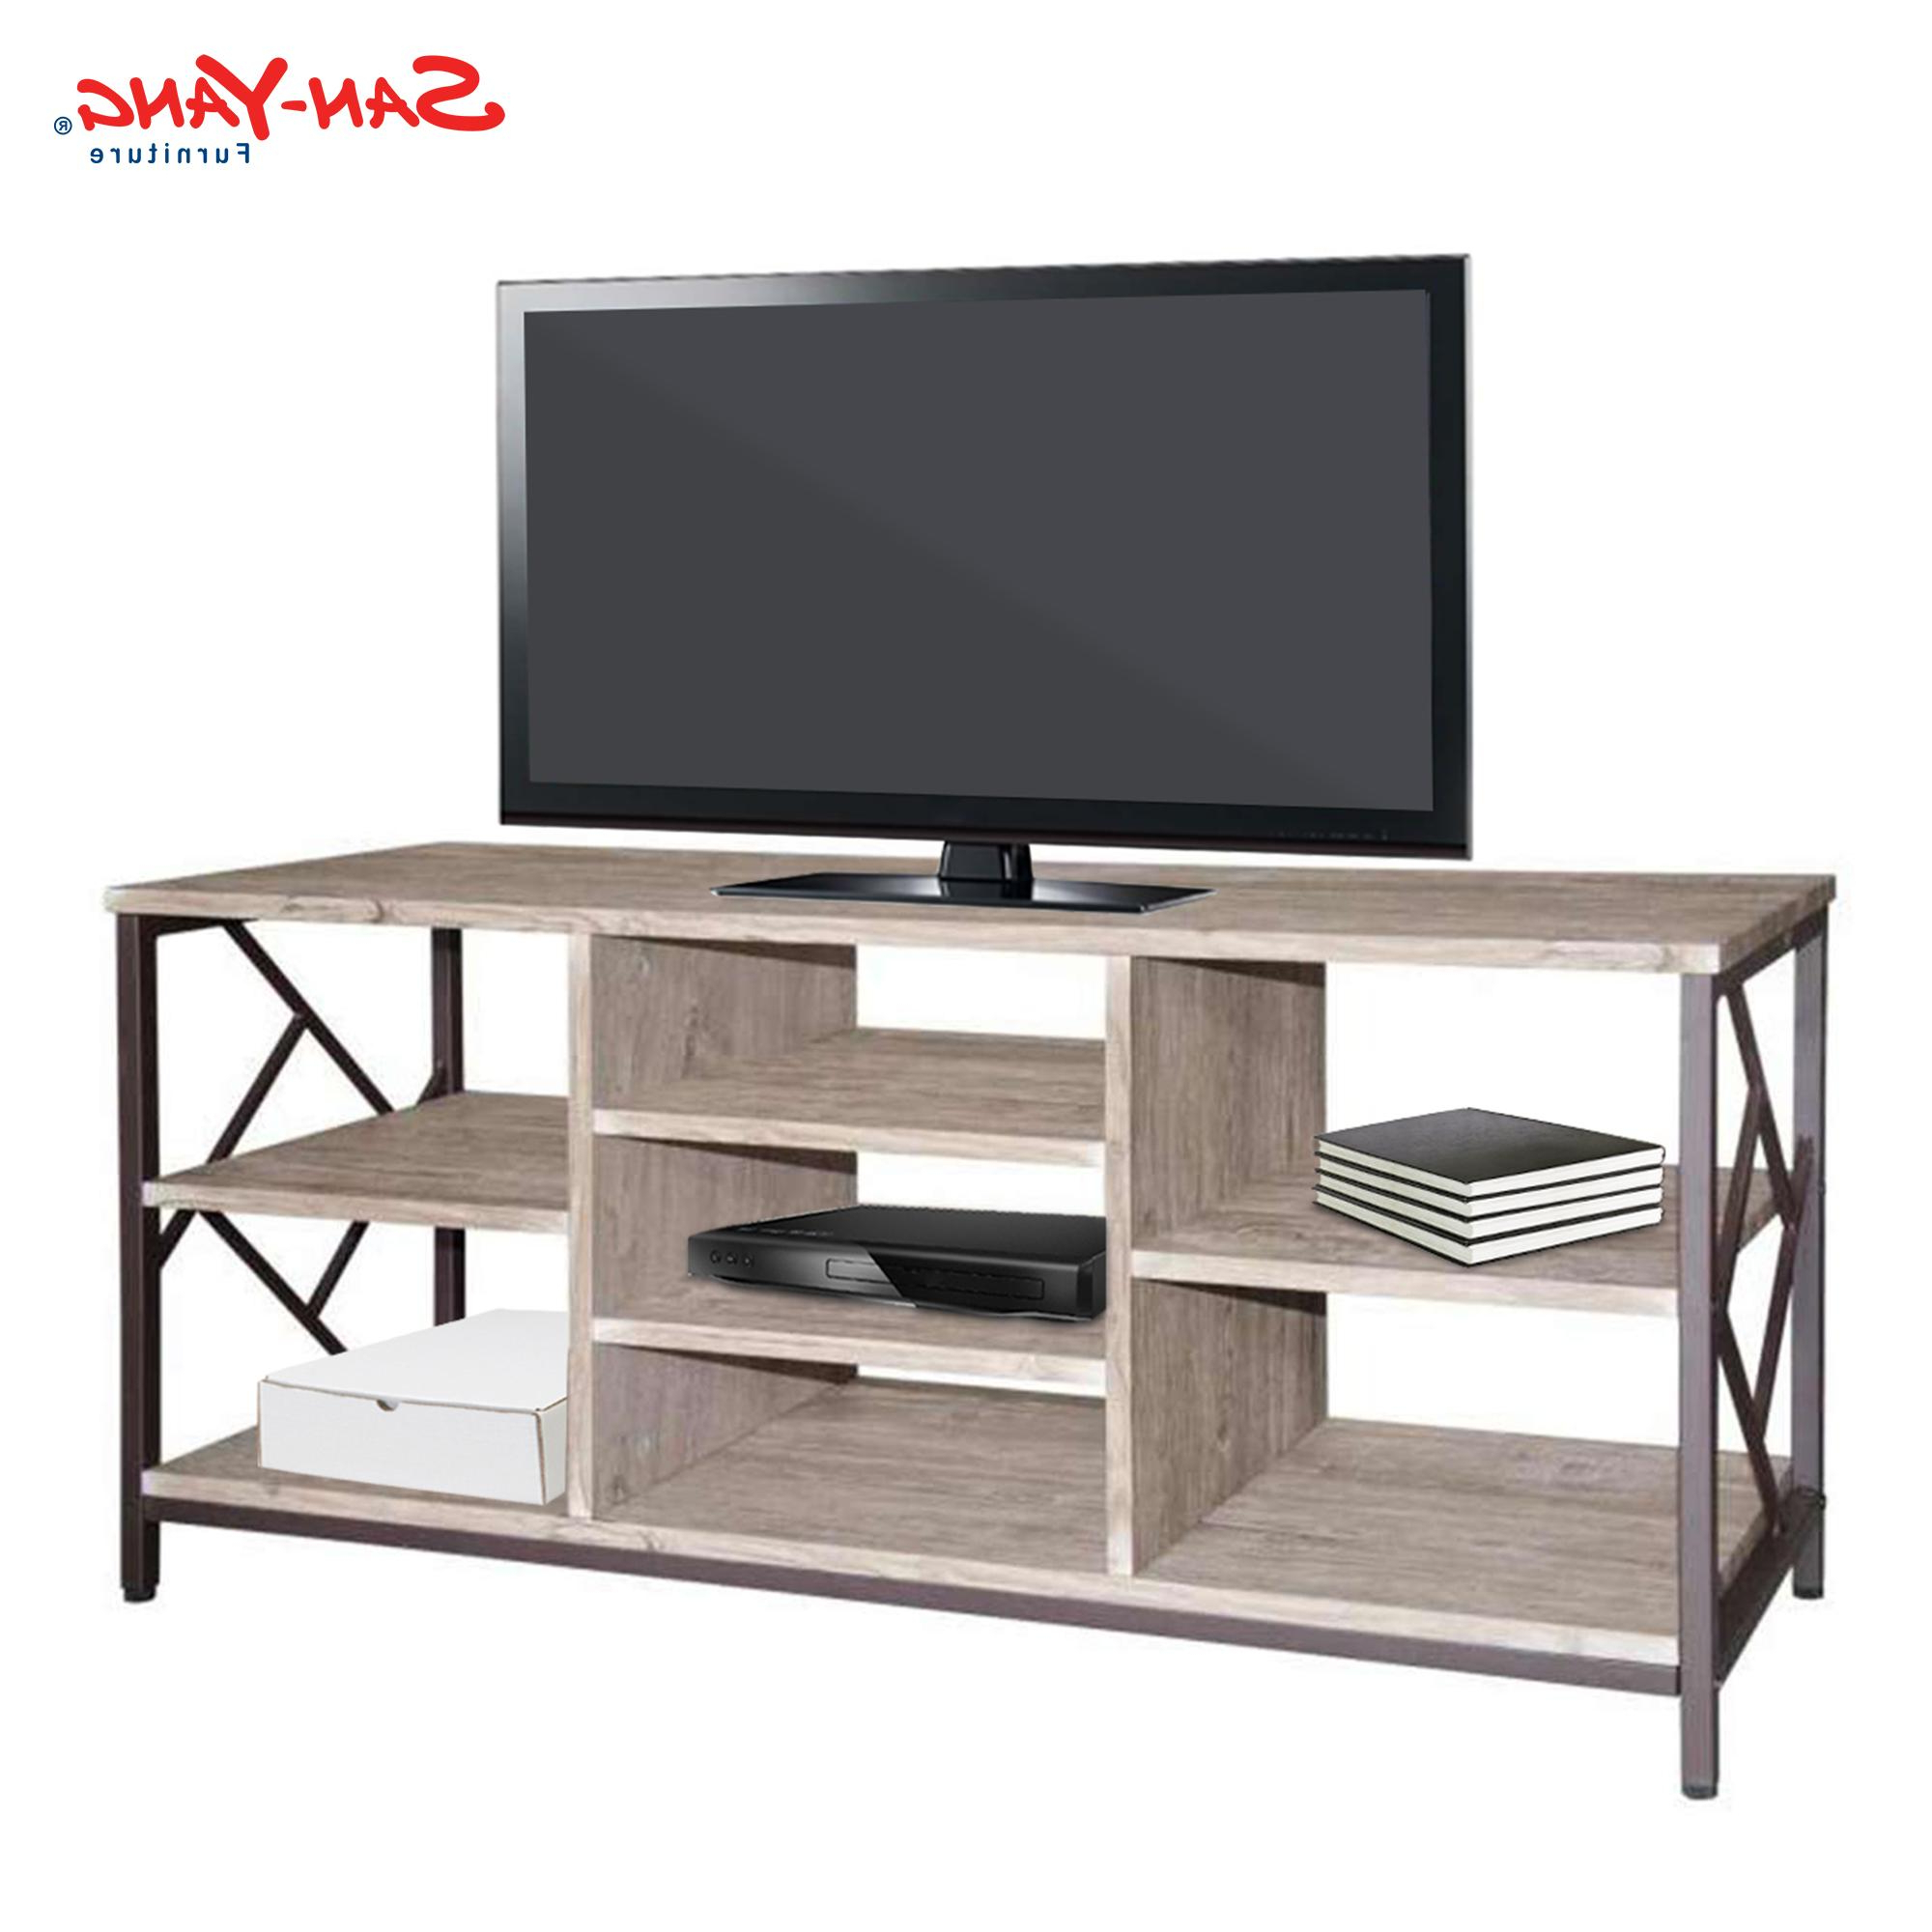 Tv Rack For Sale – Tv Cabinet Prices, Brands & Review In Philippines Inside Well Known Coffee Table And Tv Unit Sets (View 8 of 20)